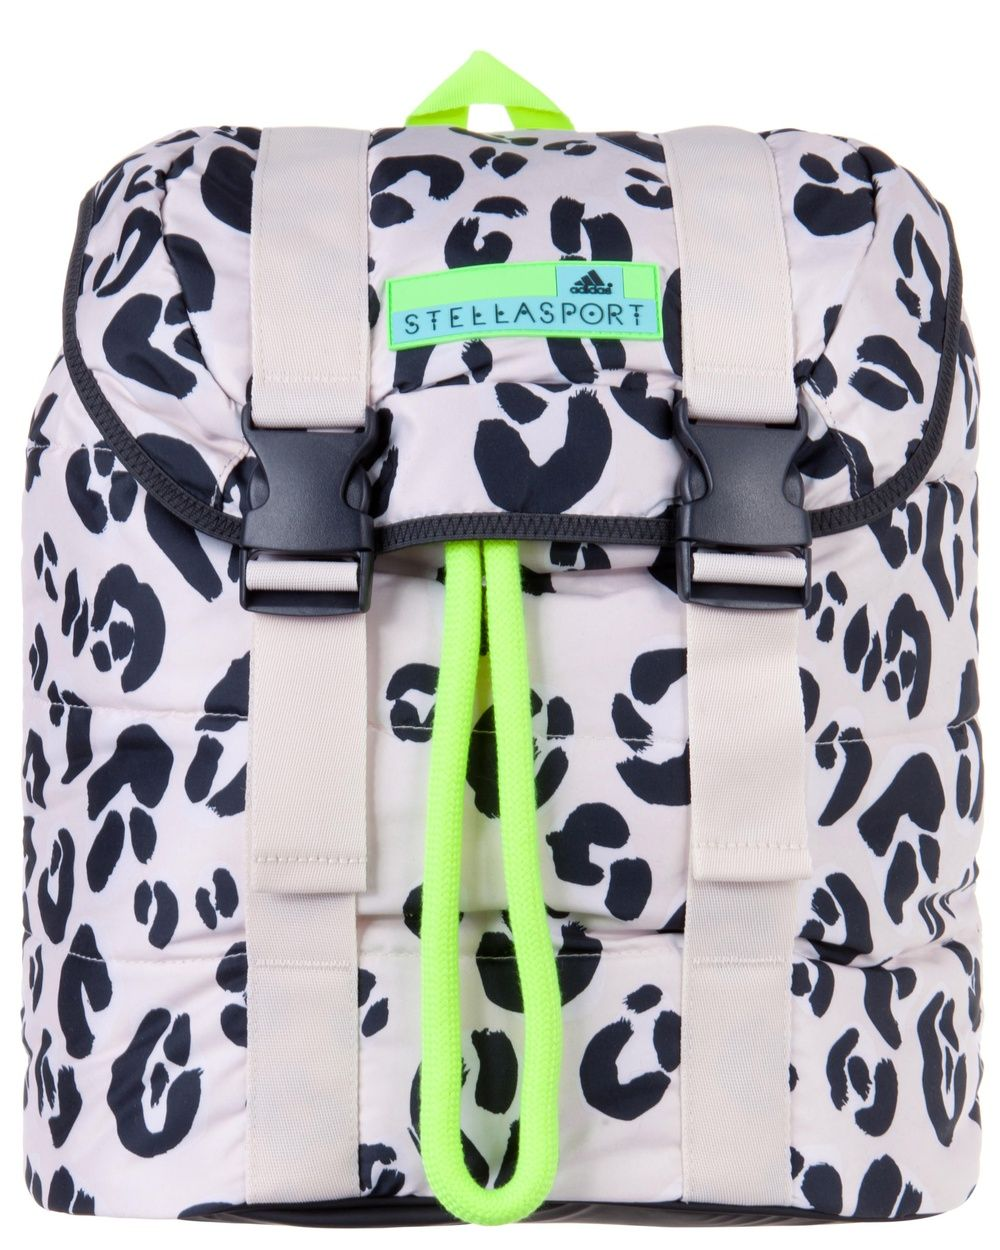 Stellasport Backpack Leopard - Dream Shuttles 0b7ffa1b4c